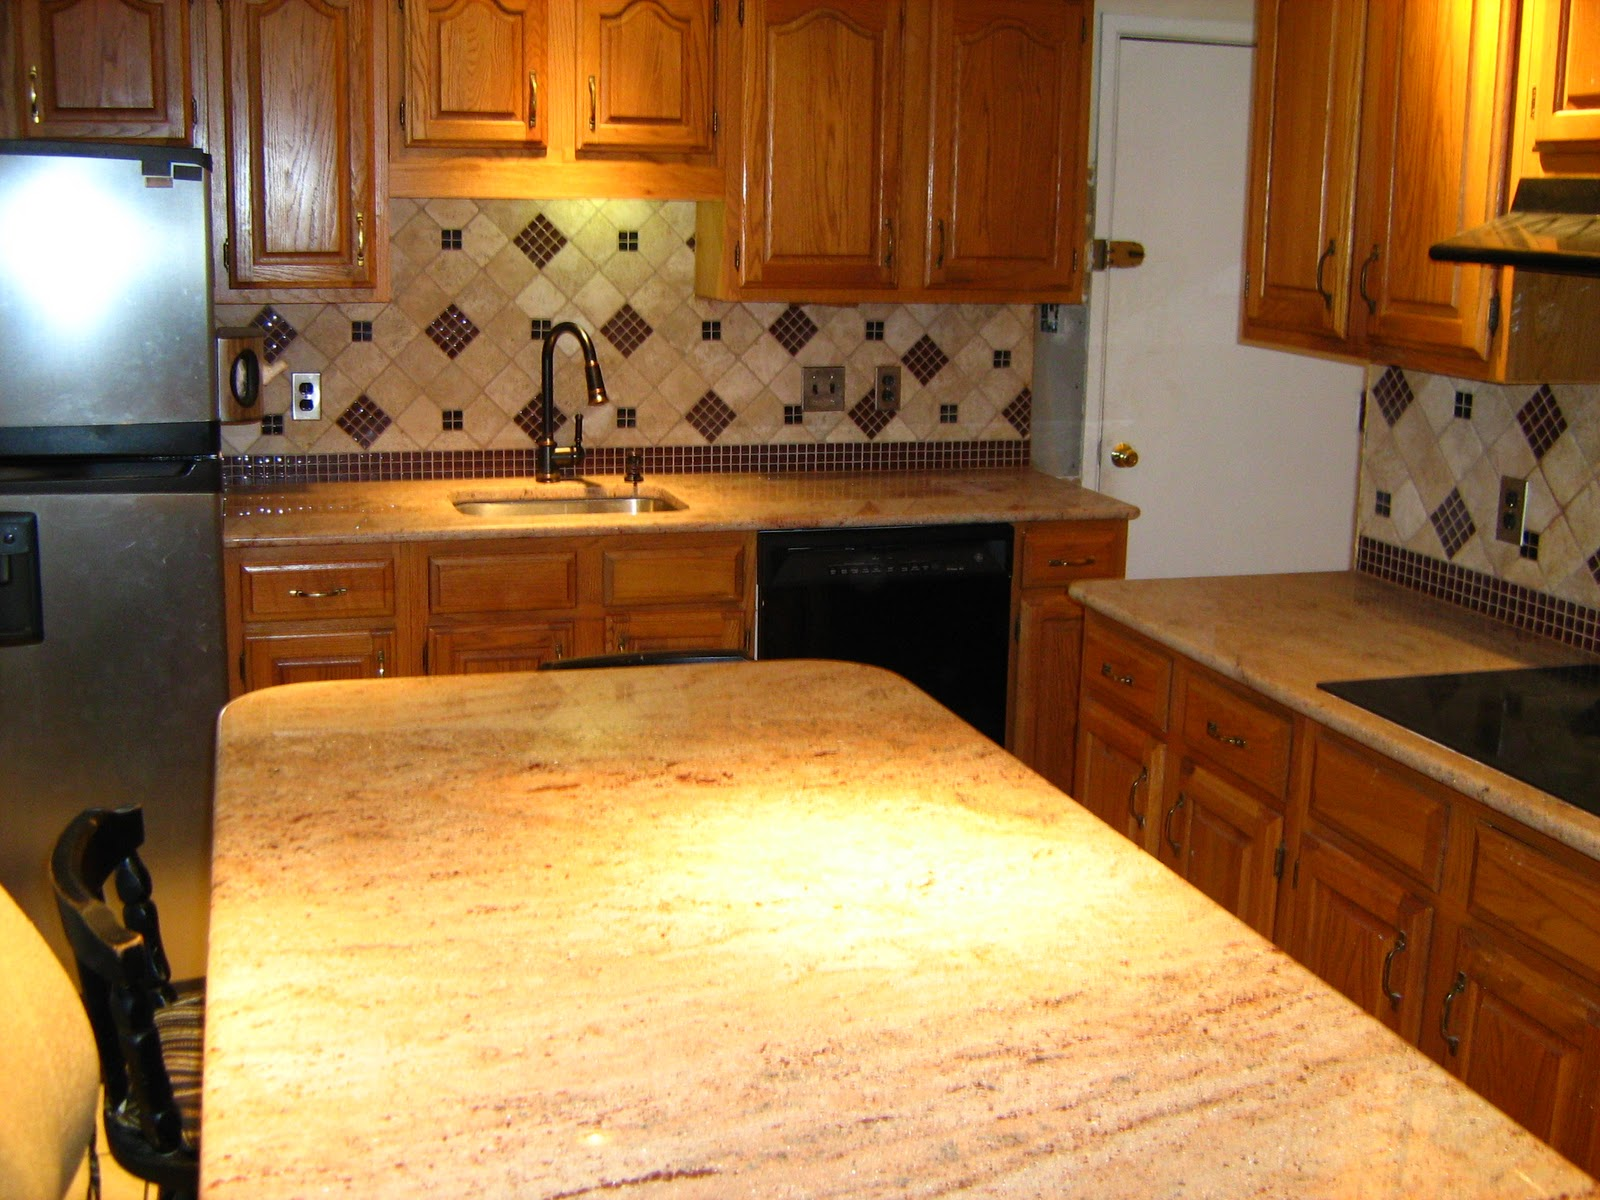 We Provided Granite Slab Countertops And With Julia And Alexu0027s Assistance  On The Tile Backsplash Design, Created A Beautiful Kitchen.